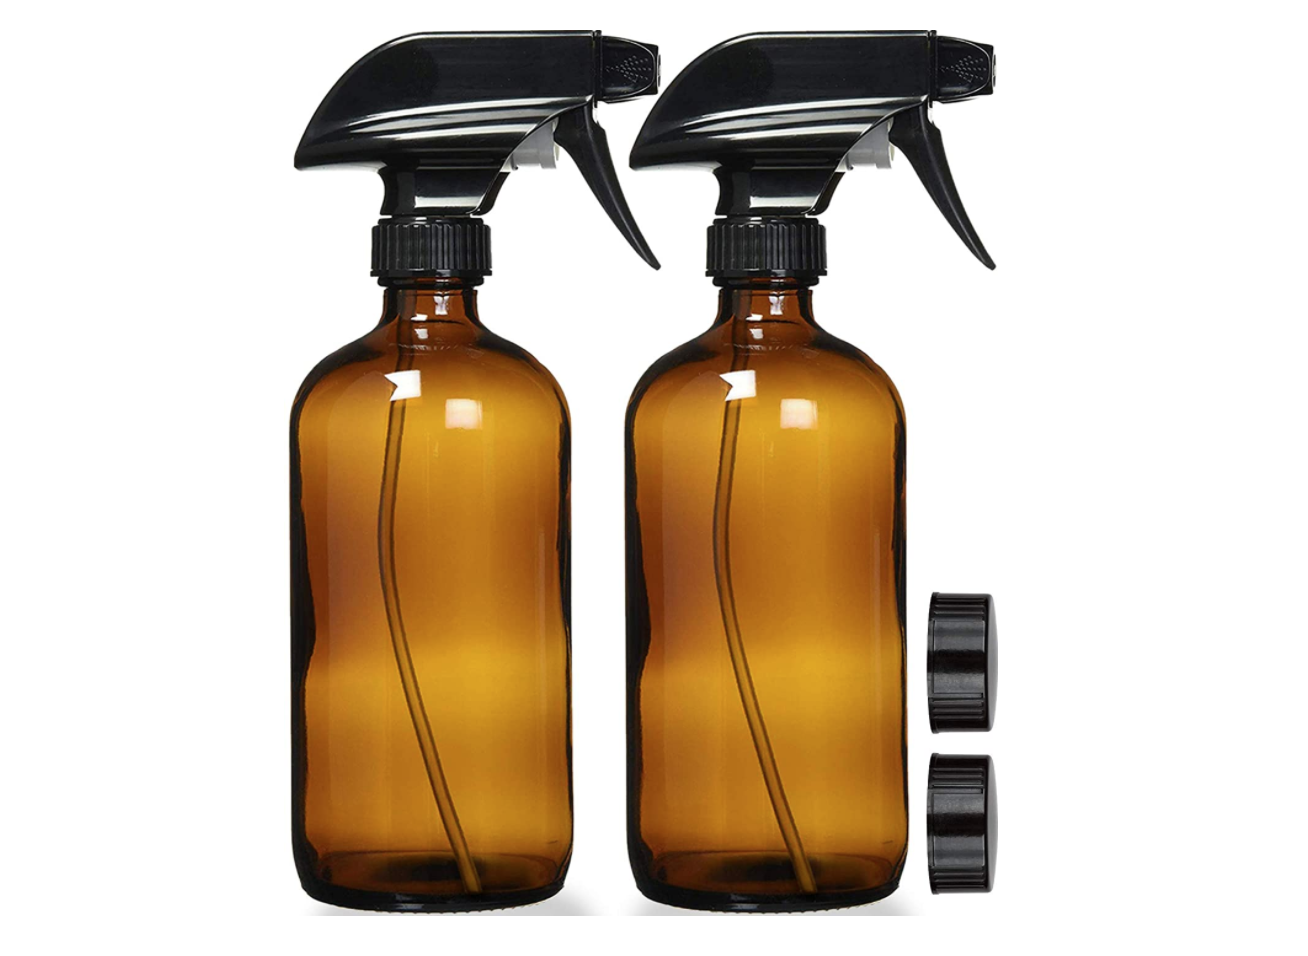 Eco Friendly Cleaning Empty Amber Glass Spray Bottles With Labels Refillable Container Glass Spray Bottle Amber Glass Bottles Glass